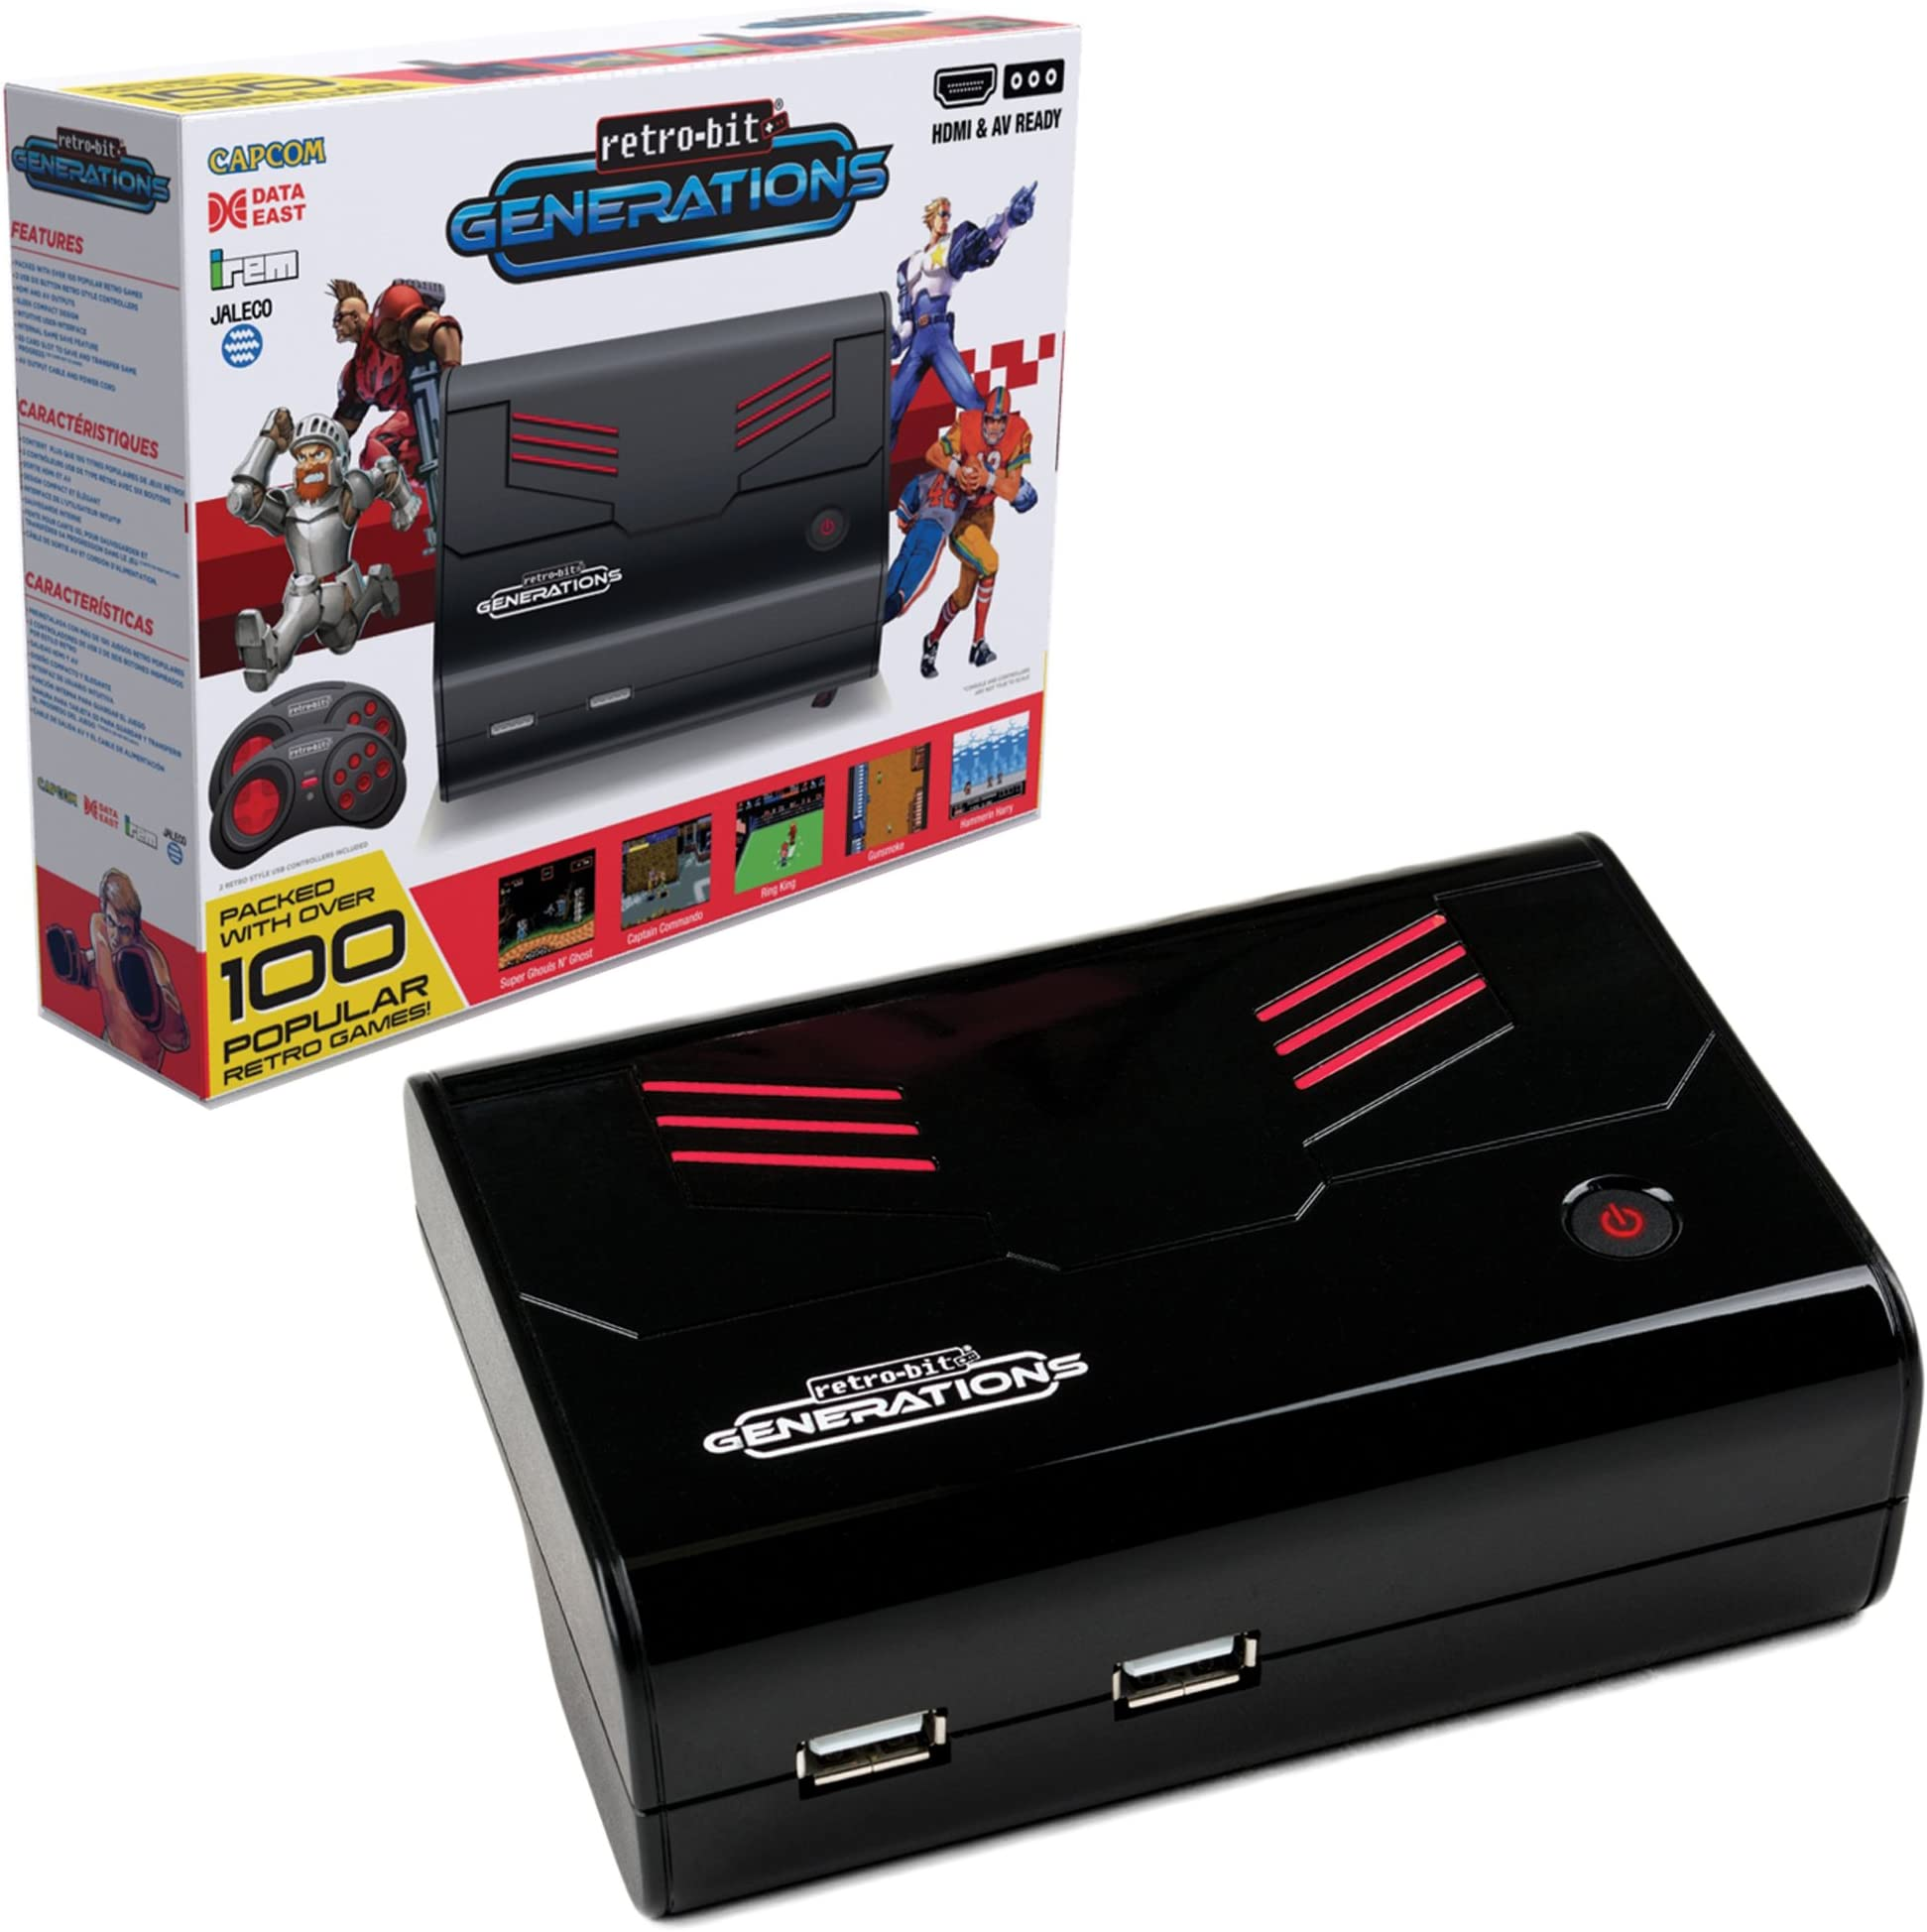 00f8ec05d03d3 Amazon.com  Retro-Bit Generations - Plug and Play Game Console Red ...